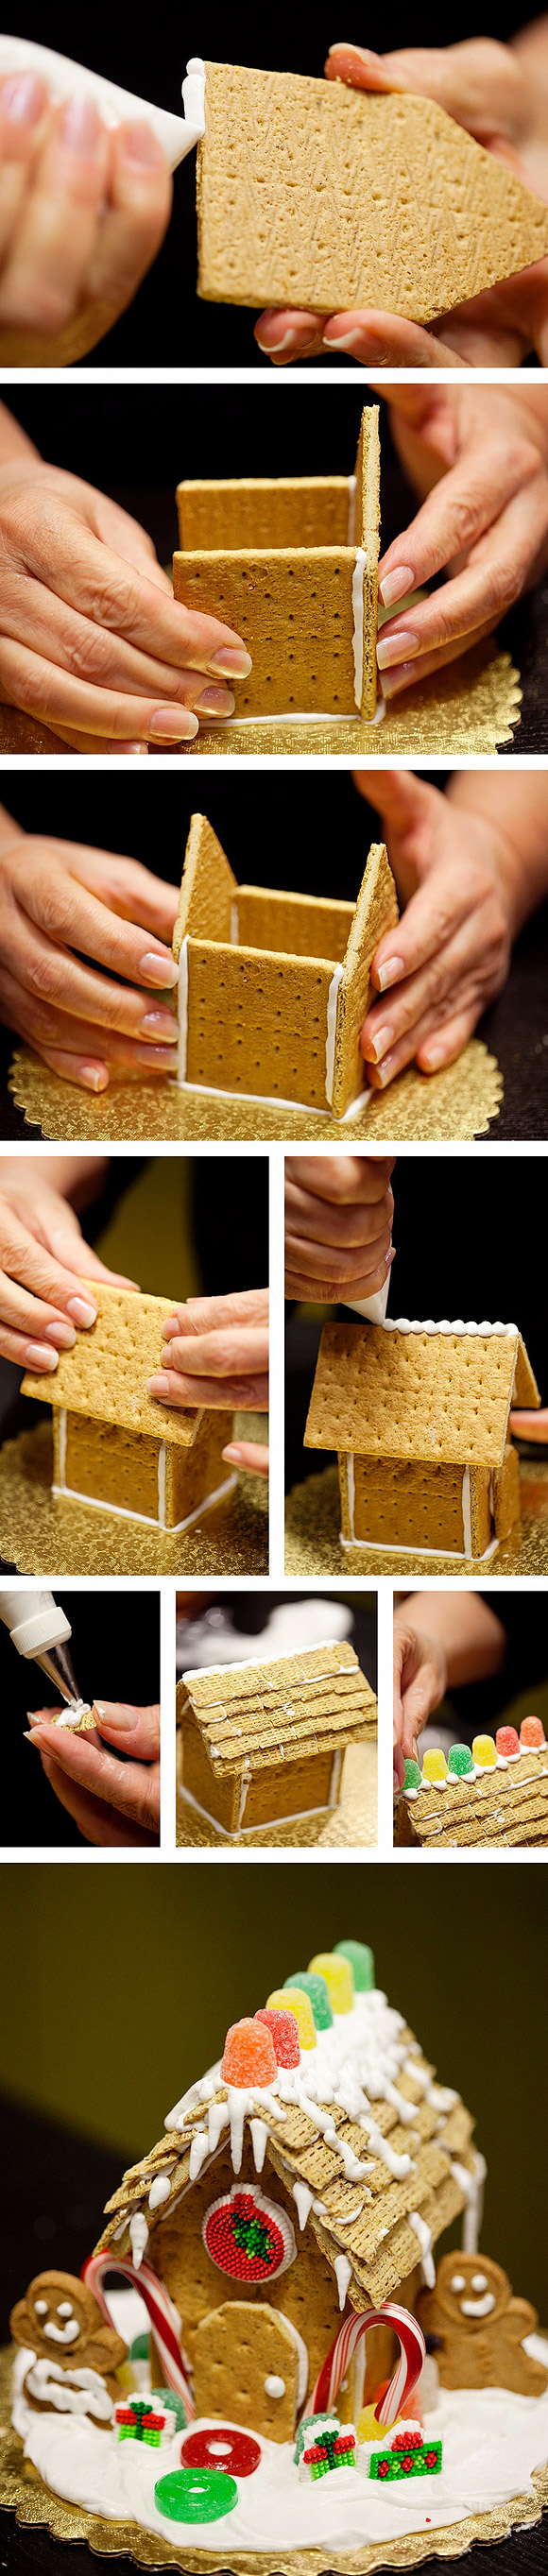 Mini Gingerbread House - Casetta di Zenzero